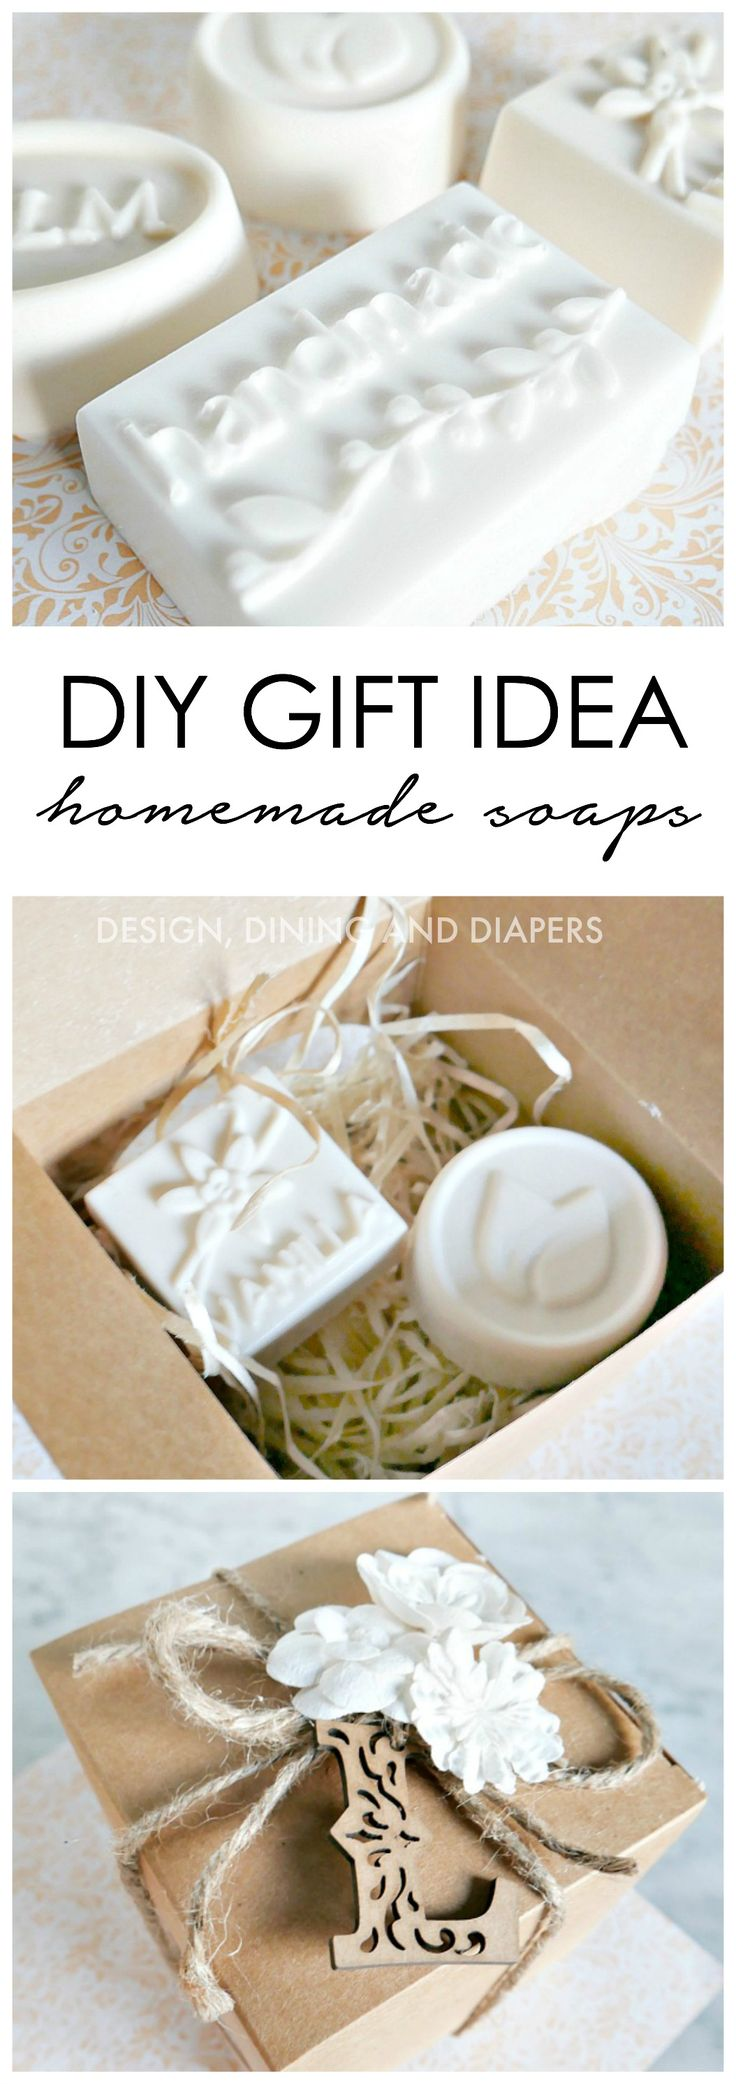 DIY Gift Idea Homemade Soaps With Gift Wrap